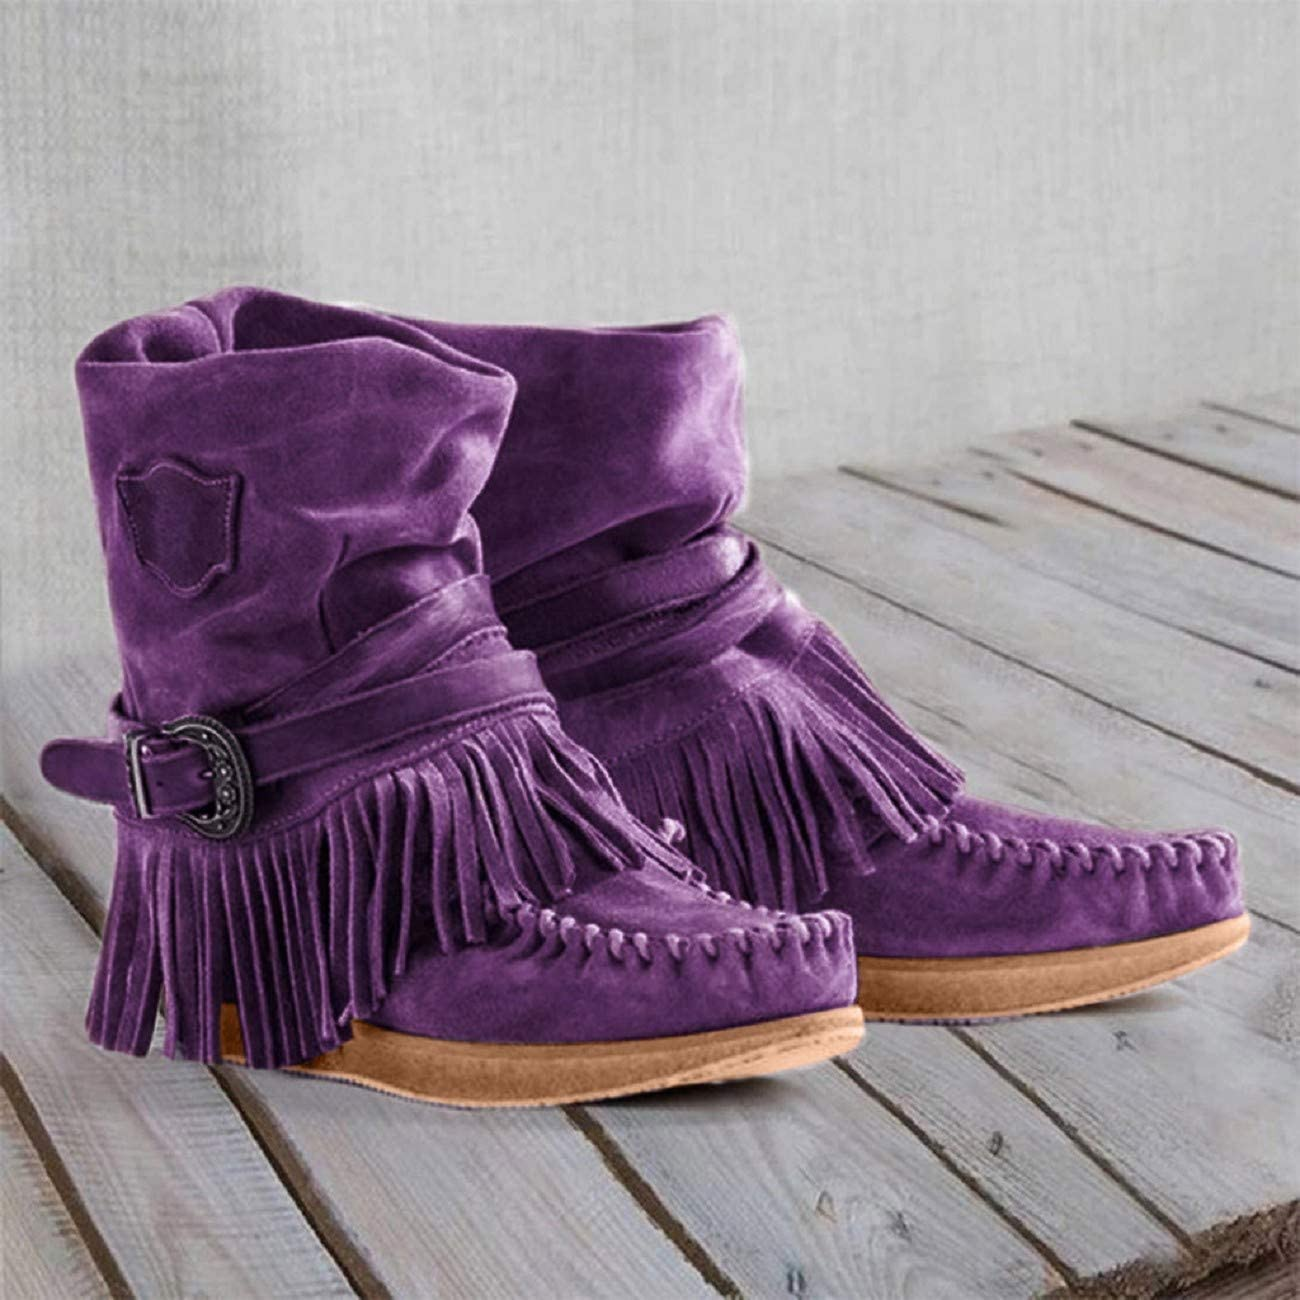 Womens Moccasins Ankle Boots,Tsmile Retro Chic Suede Adjustable Buckle Round Toe Tassel Fringe Flat Short Boots